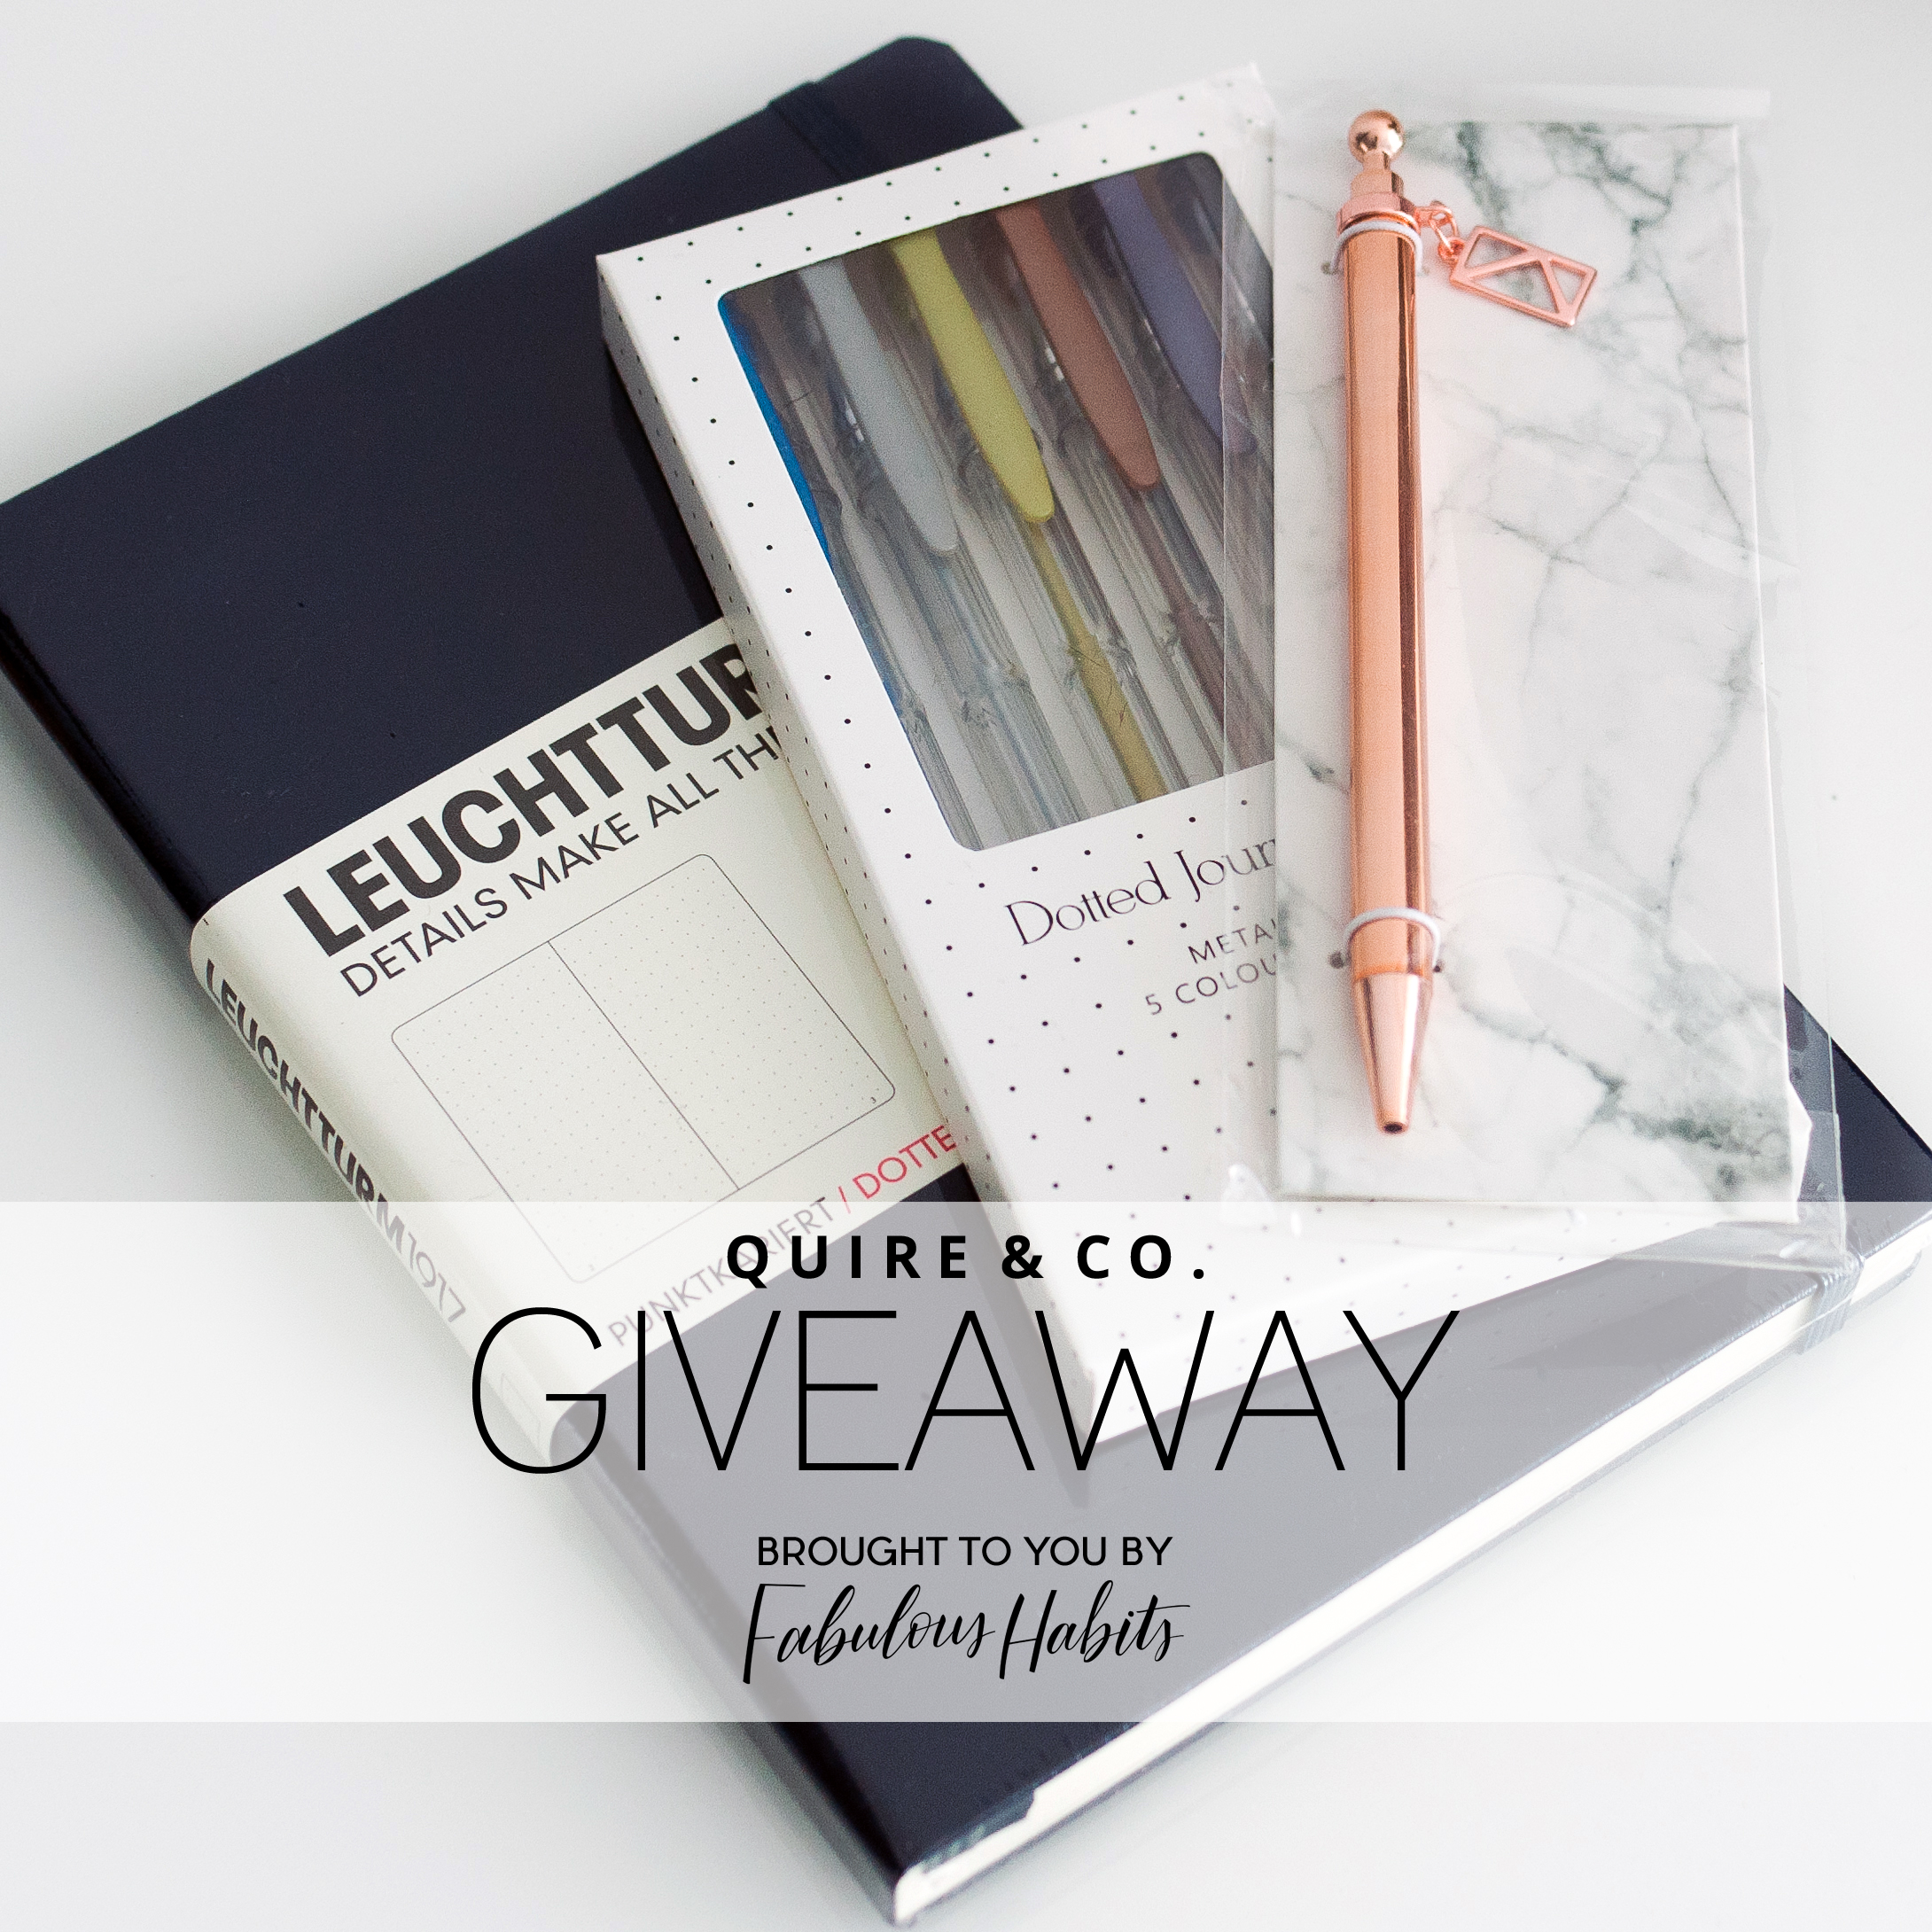 Partnered with Quire & Co for a fresh, new look for the Fabulous Habits blog